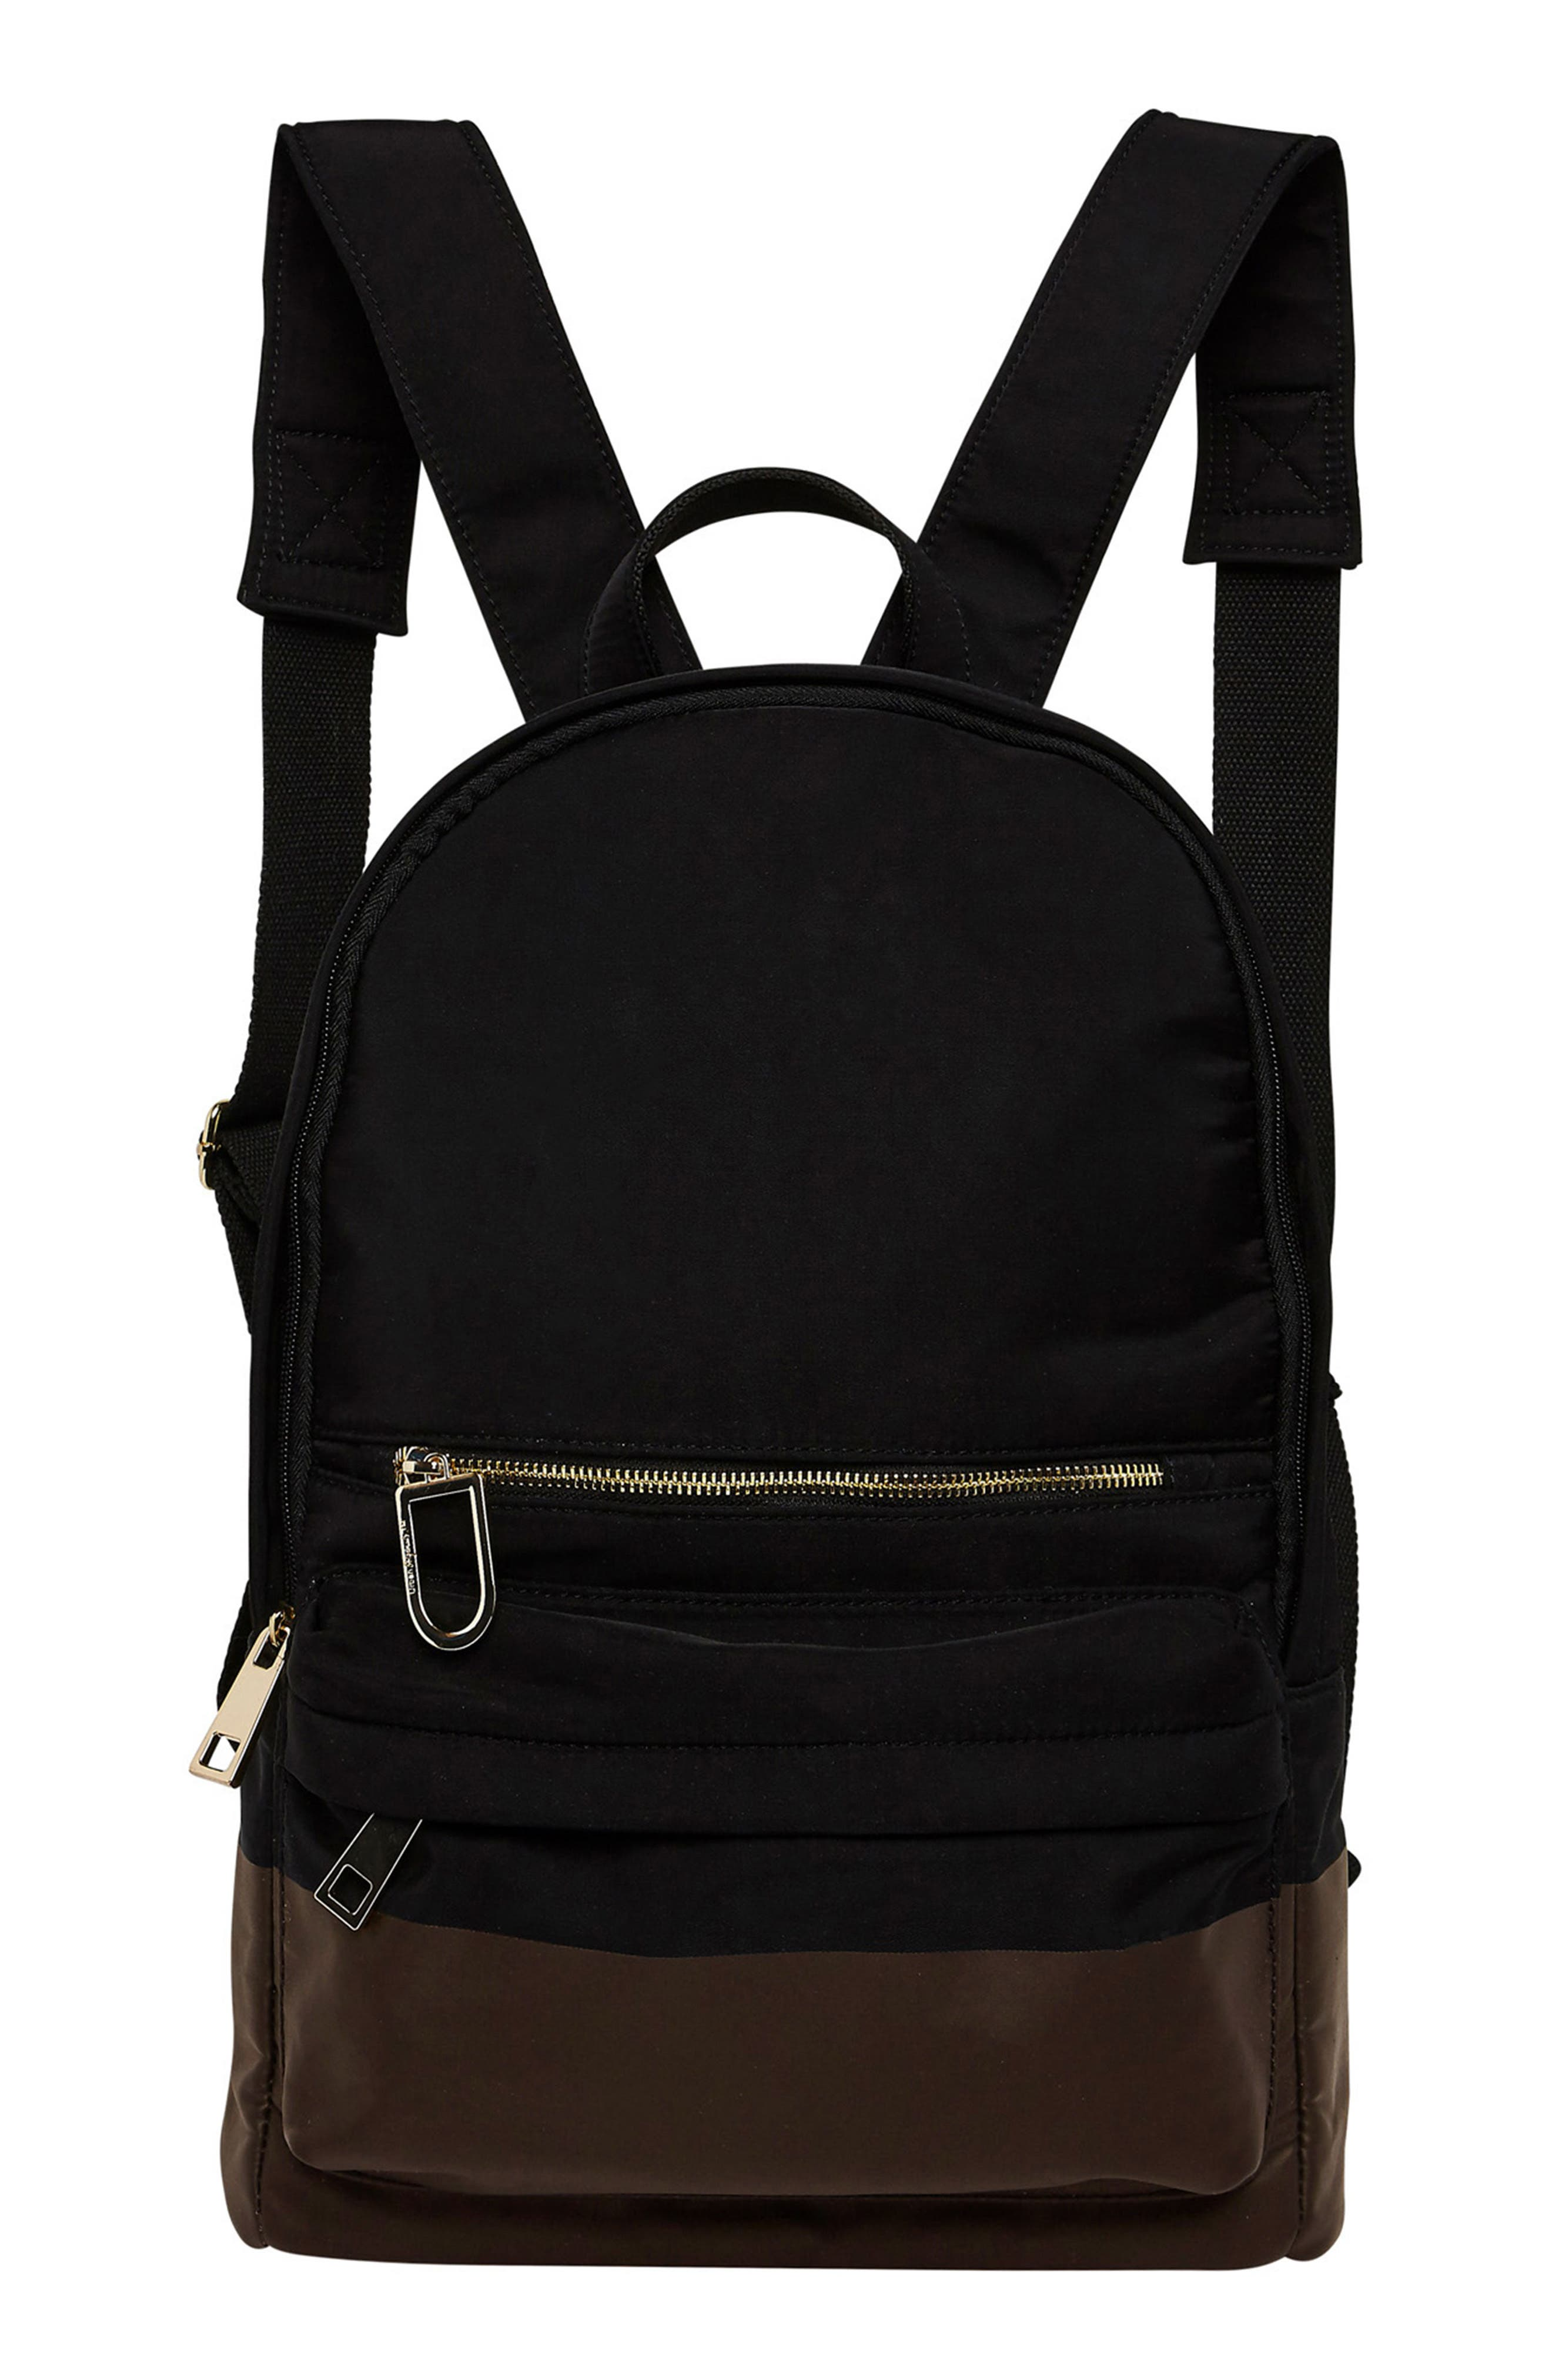 Own Beat Vegan Leather Backpack,                         Main,                         color, 001